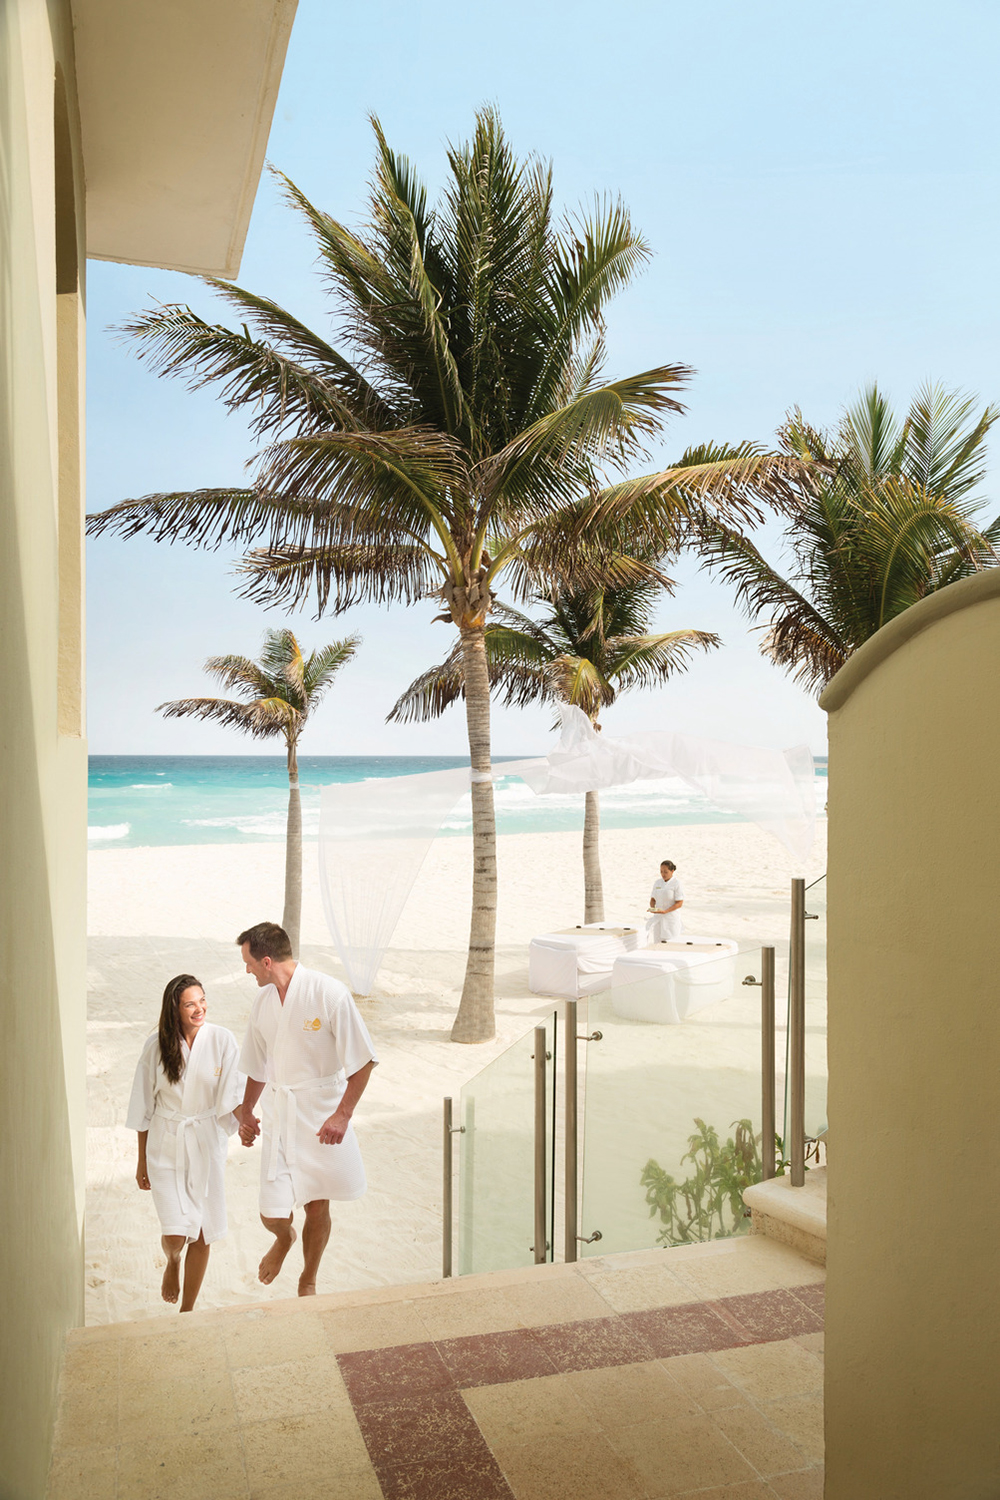 The spa offers a variety of couples treatments for ultimate relaxation time together.